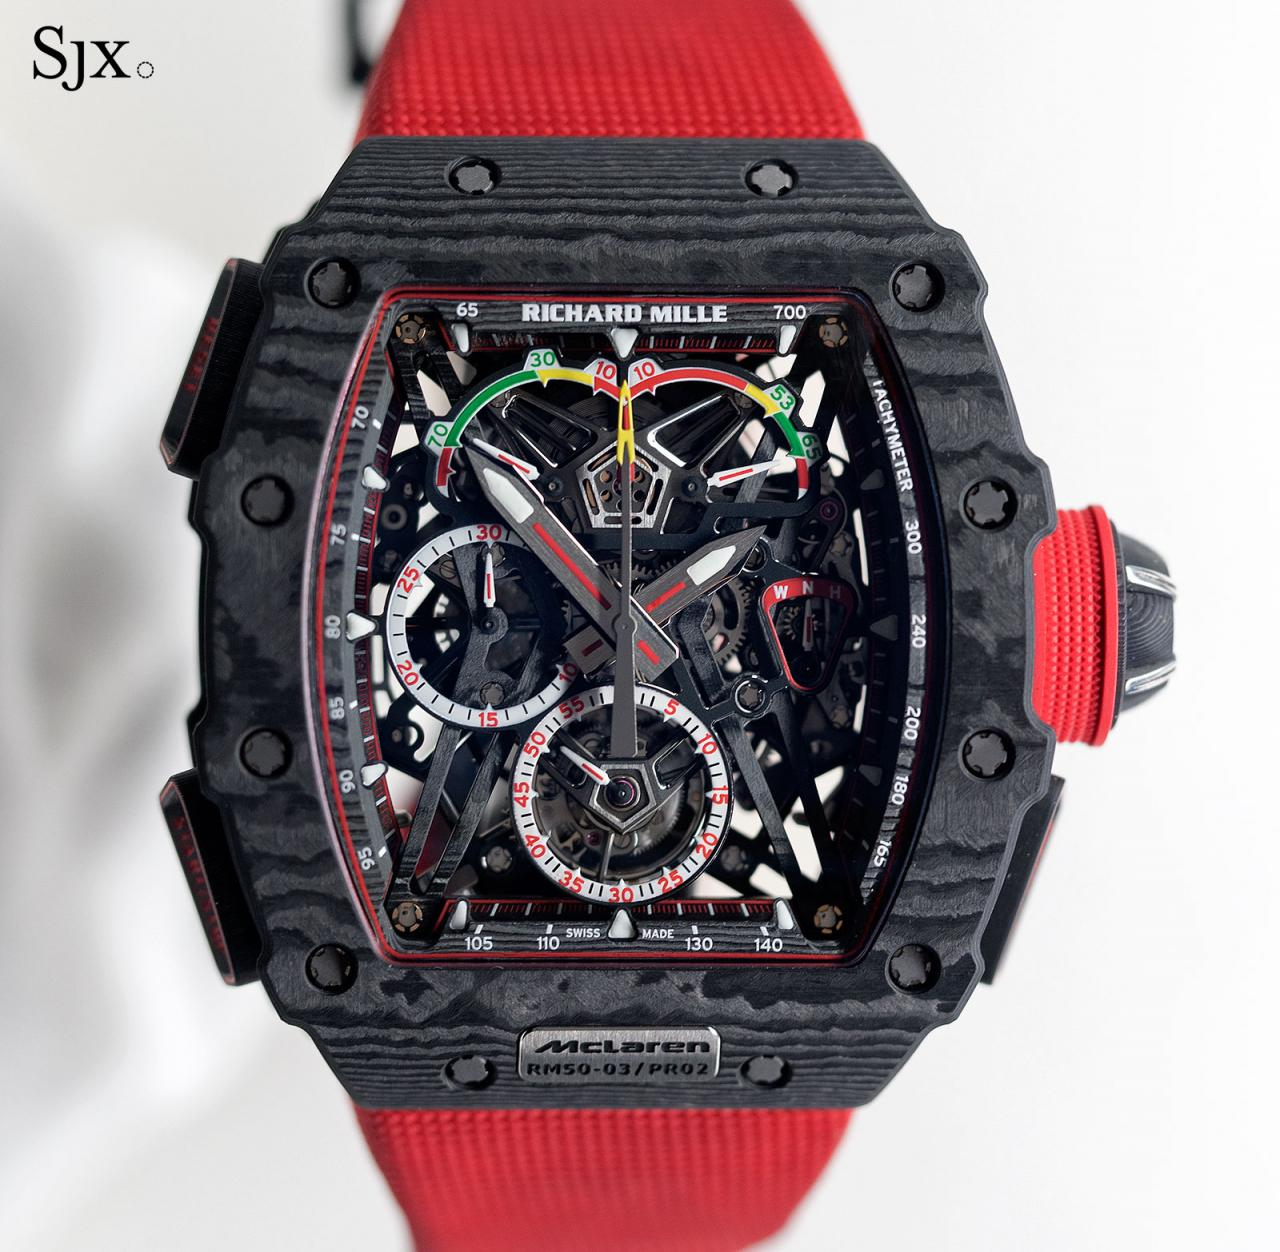 Richard Mille Watches Prices In India Replica Archives Swiss Replica